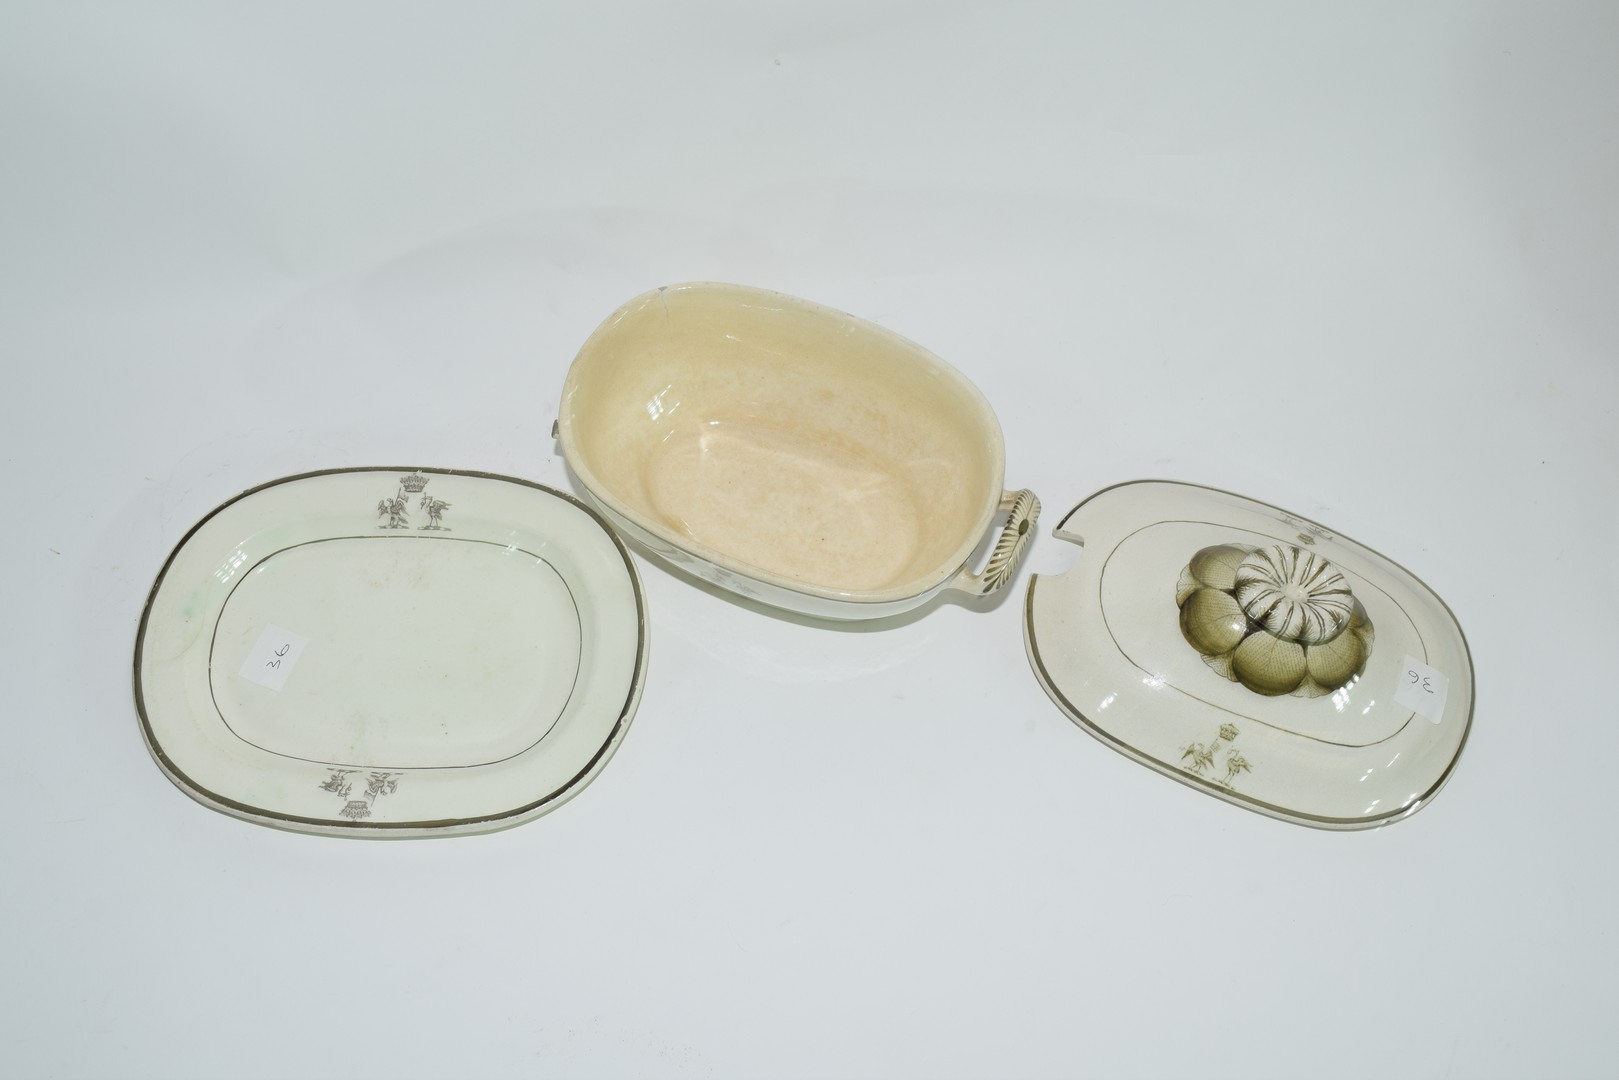 Late 18th century Rogers pearlware small tureen - Image 5 of 6